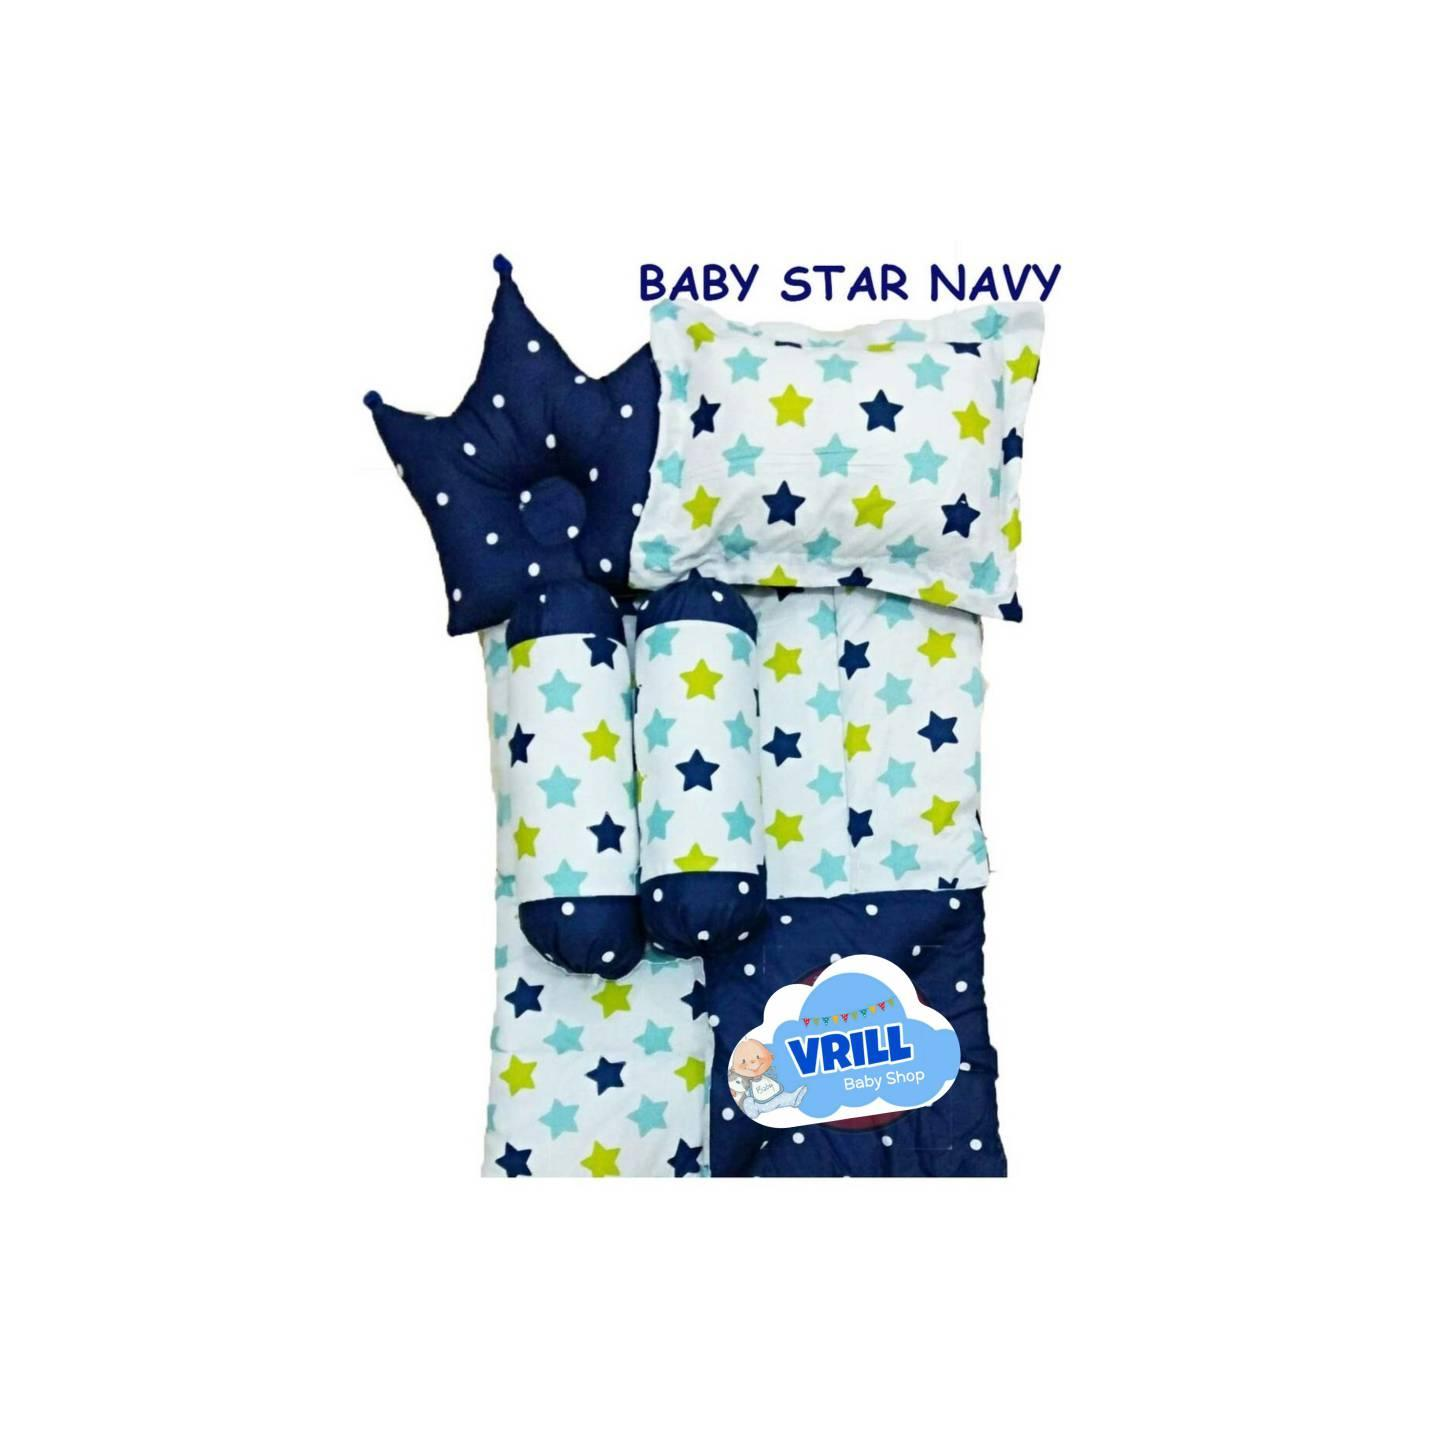 Bedcover Set bayi | baby bedding set | selimut bantal baby star